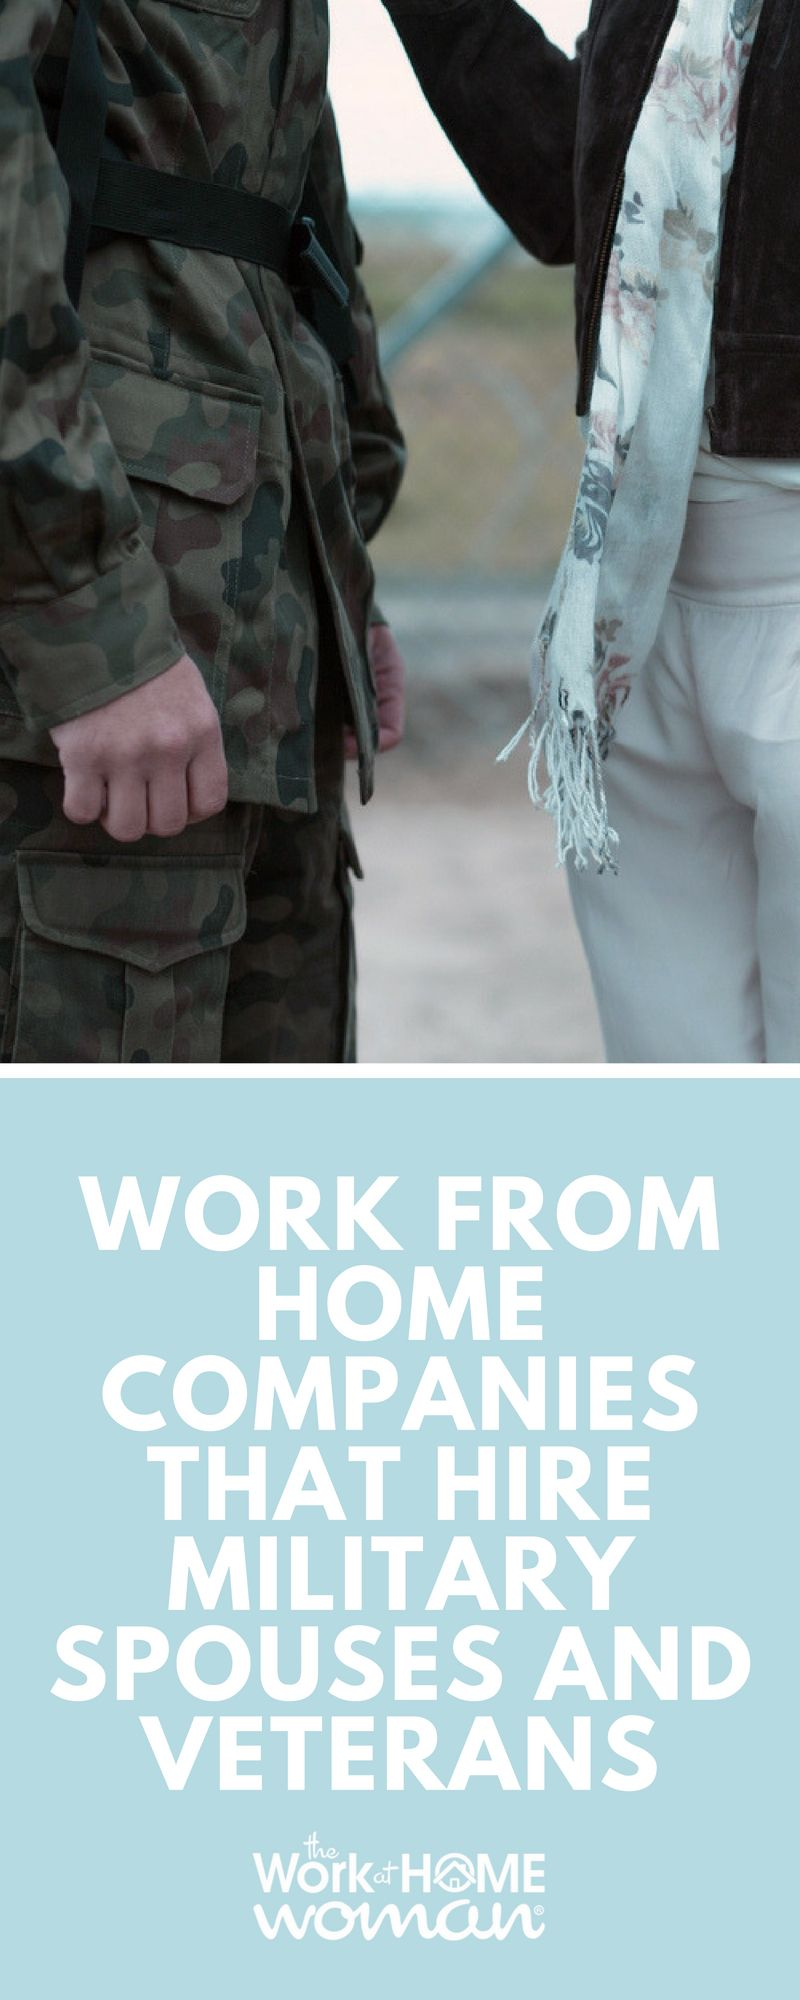 Work From Home Companies That Hire Military Spouses